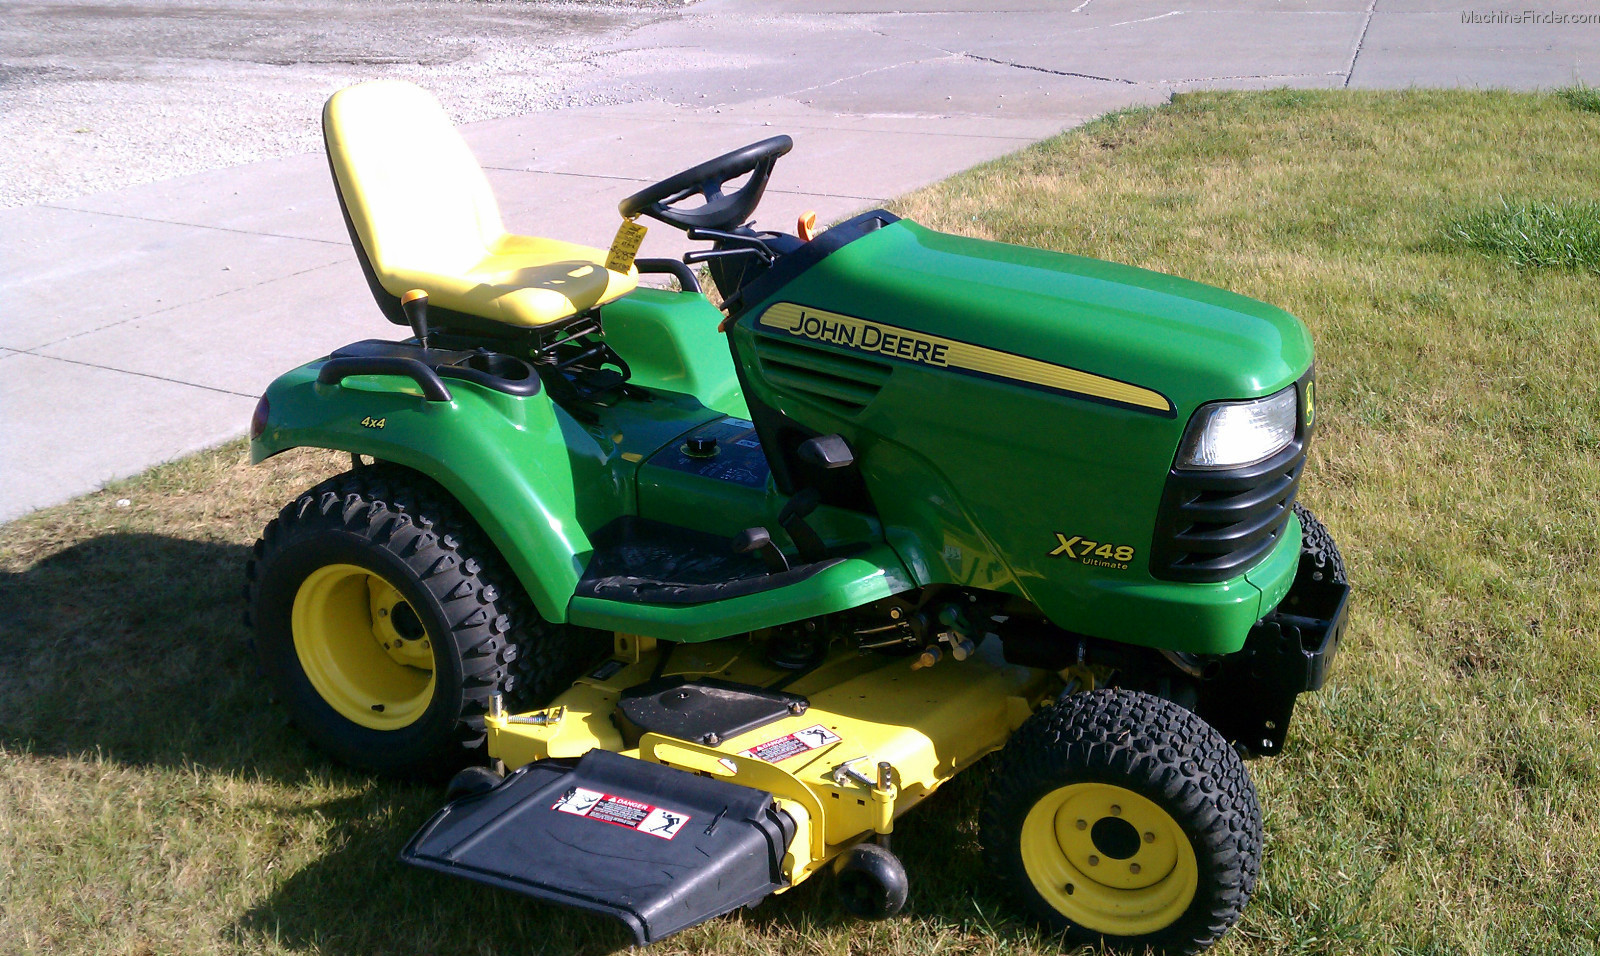 John Deere 944 http://www.machinefinder.com/ww/en-US/machine/2286275